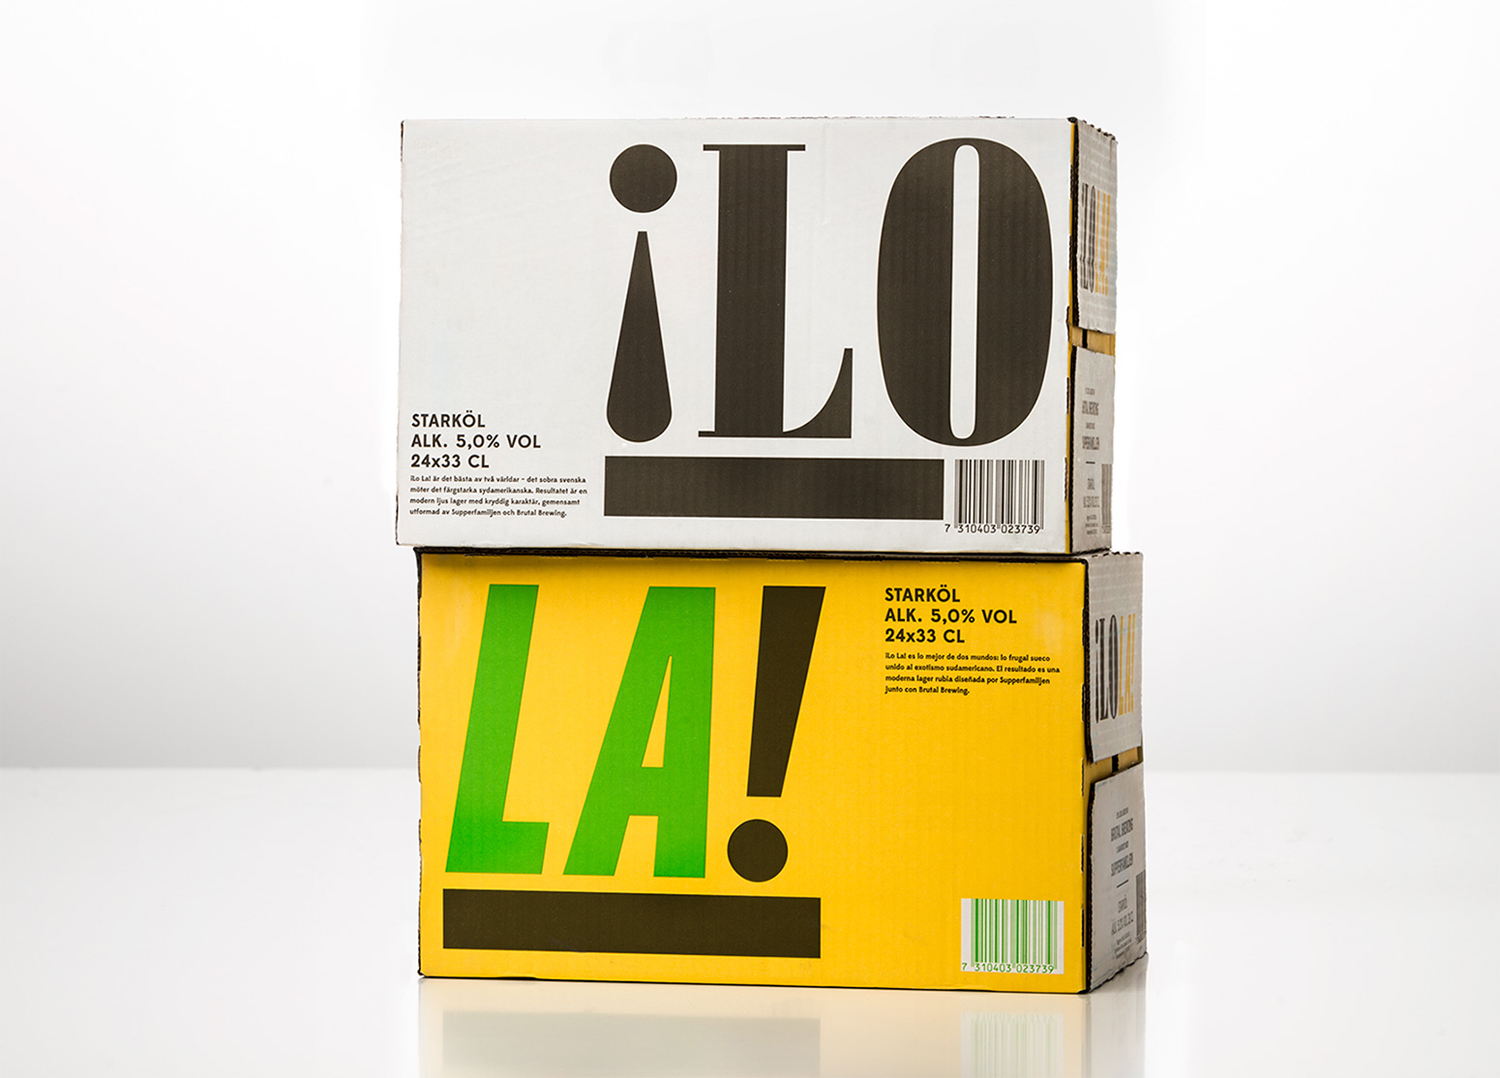 Brand identity and packaging for craft beer ¡Lo La! designed by Neumeister